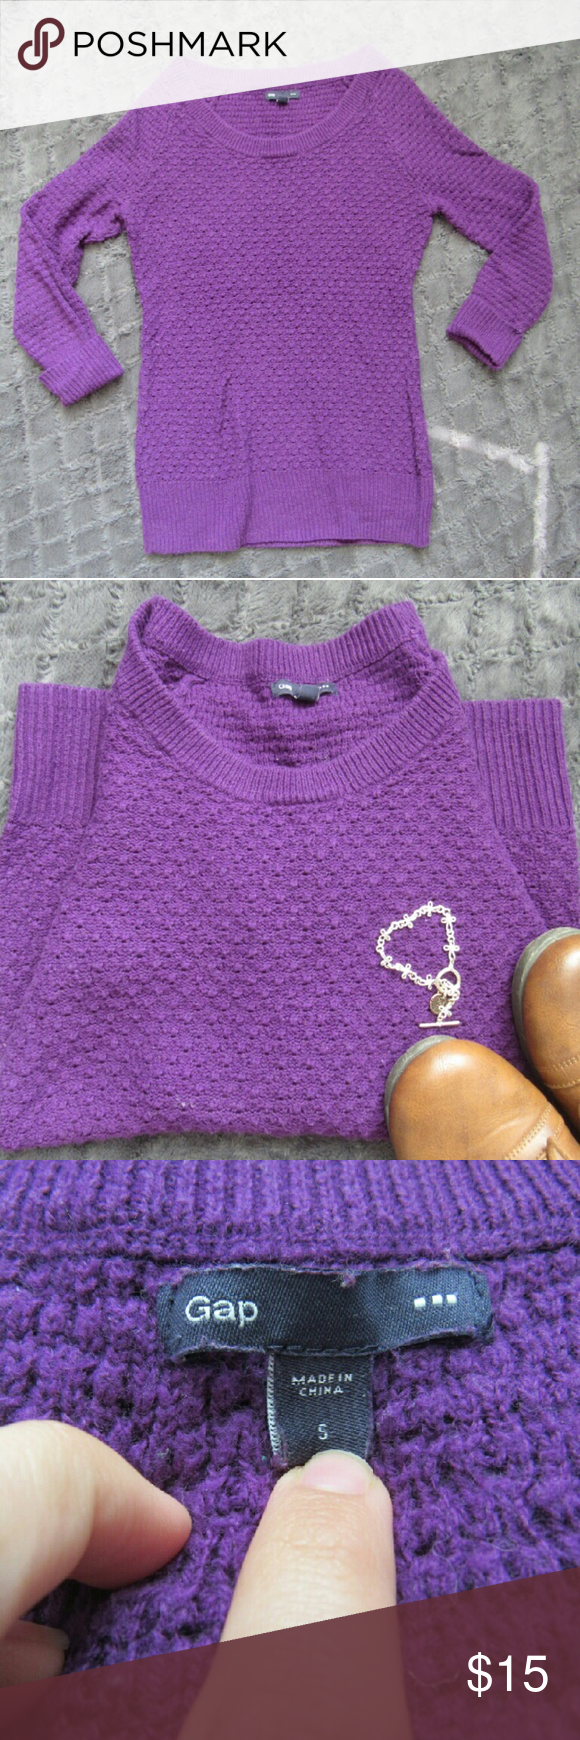 Gap Brand Purple Sweater with Cuffed Arms Beautiful purple sweater. It is more of a dark reddish purple in person. The lighting really brought out a blue tinit. 3/4 length cuffed sleeves 60% cotton 40% acrylic. Great condition. Perfect for the upcoming seasons! GAP Sweaters Crew & Scoop Necks